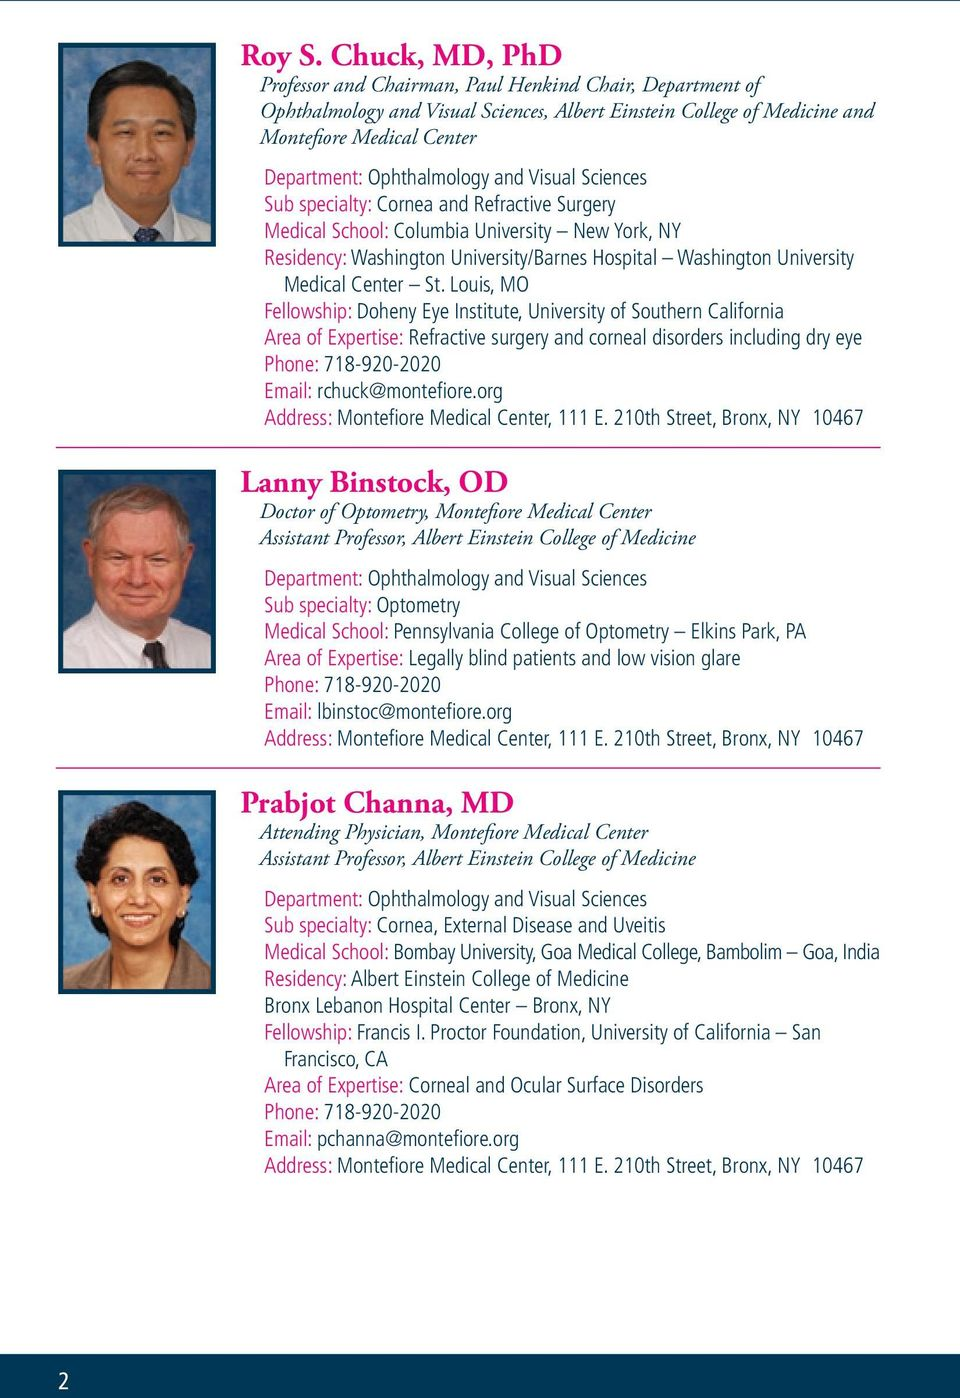 Directory of The Department of Ophthalmology and Visual